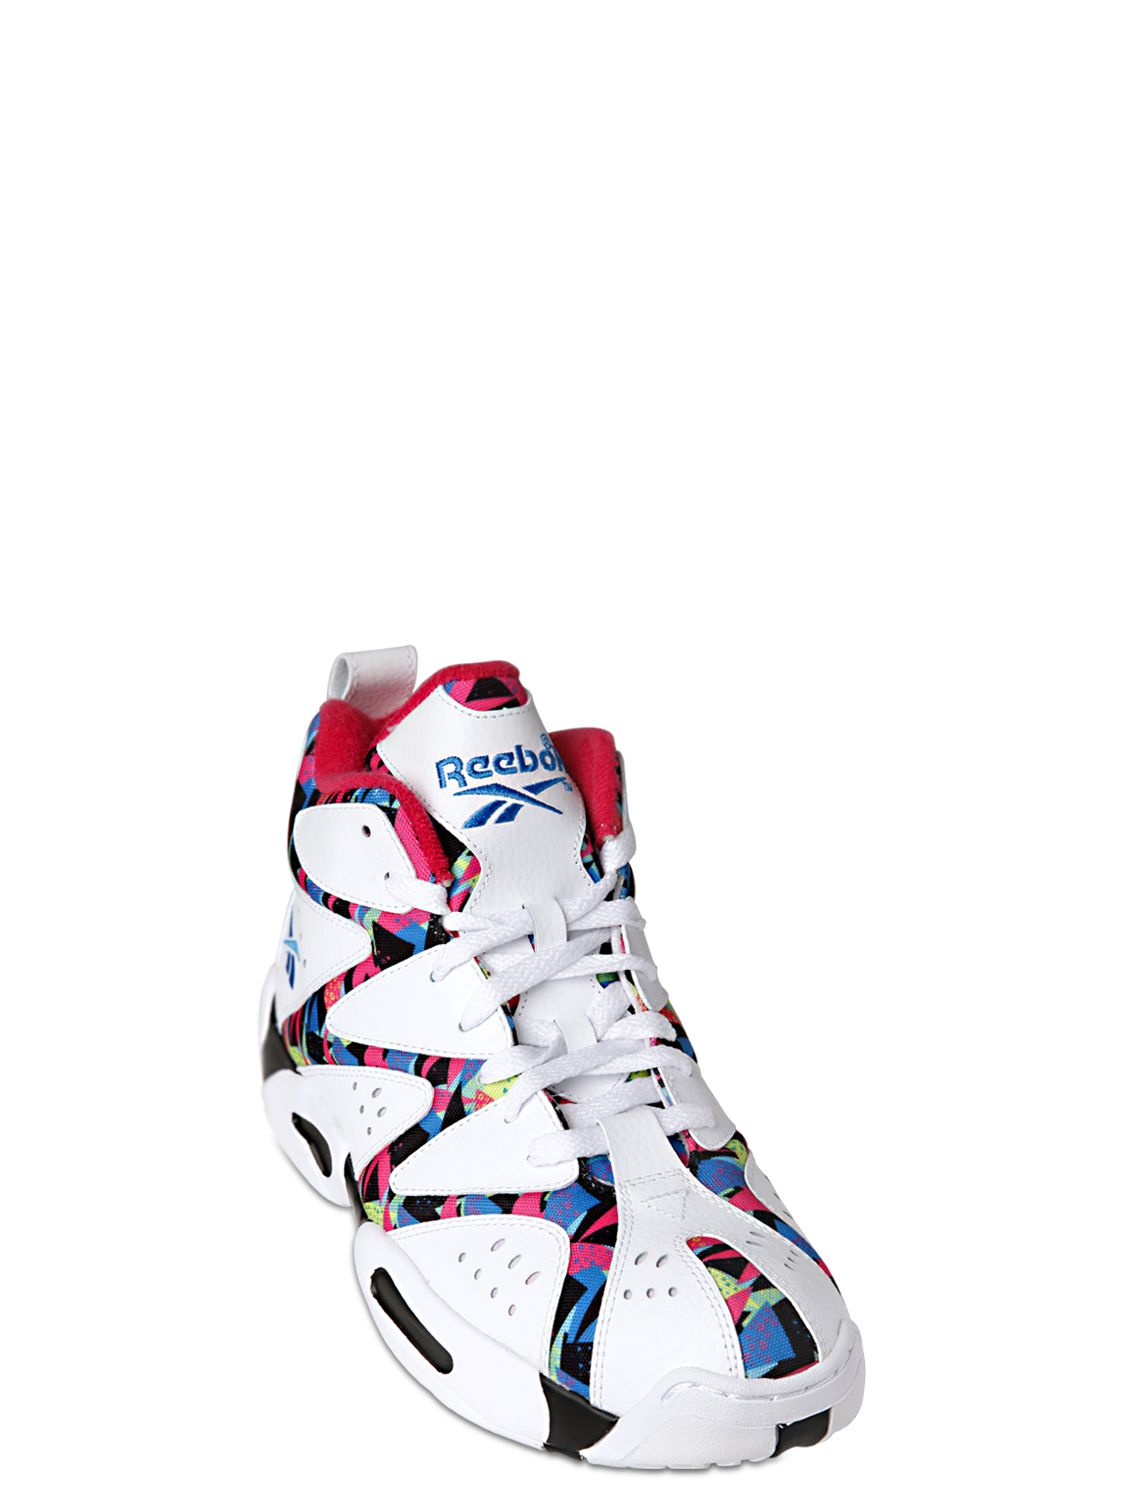 40004cd0ebb508 Lyst - Reebok Kamikaze I Printed Leather Sneakers in White for Men